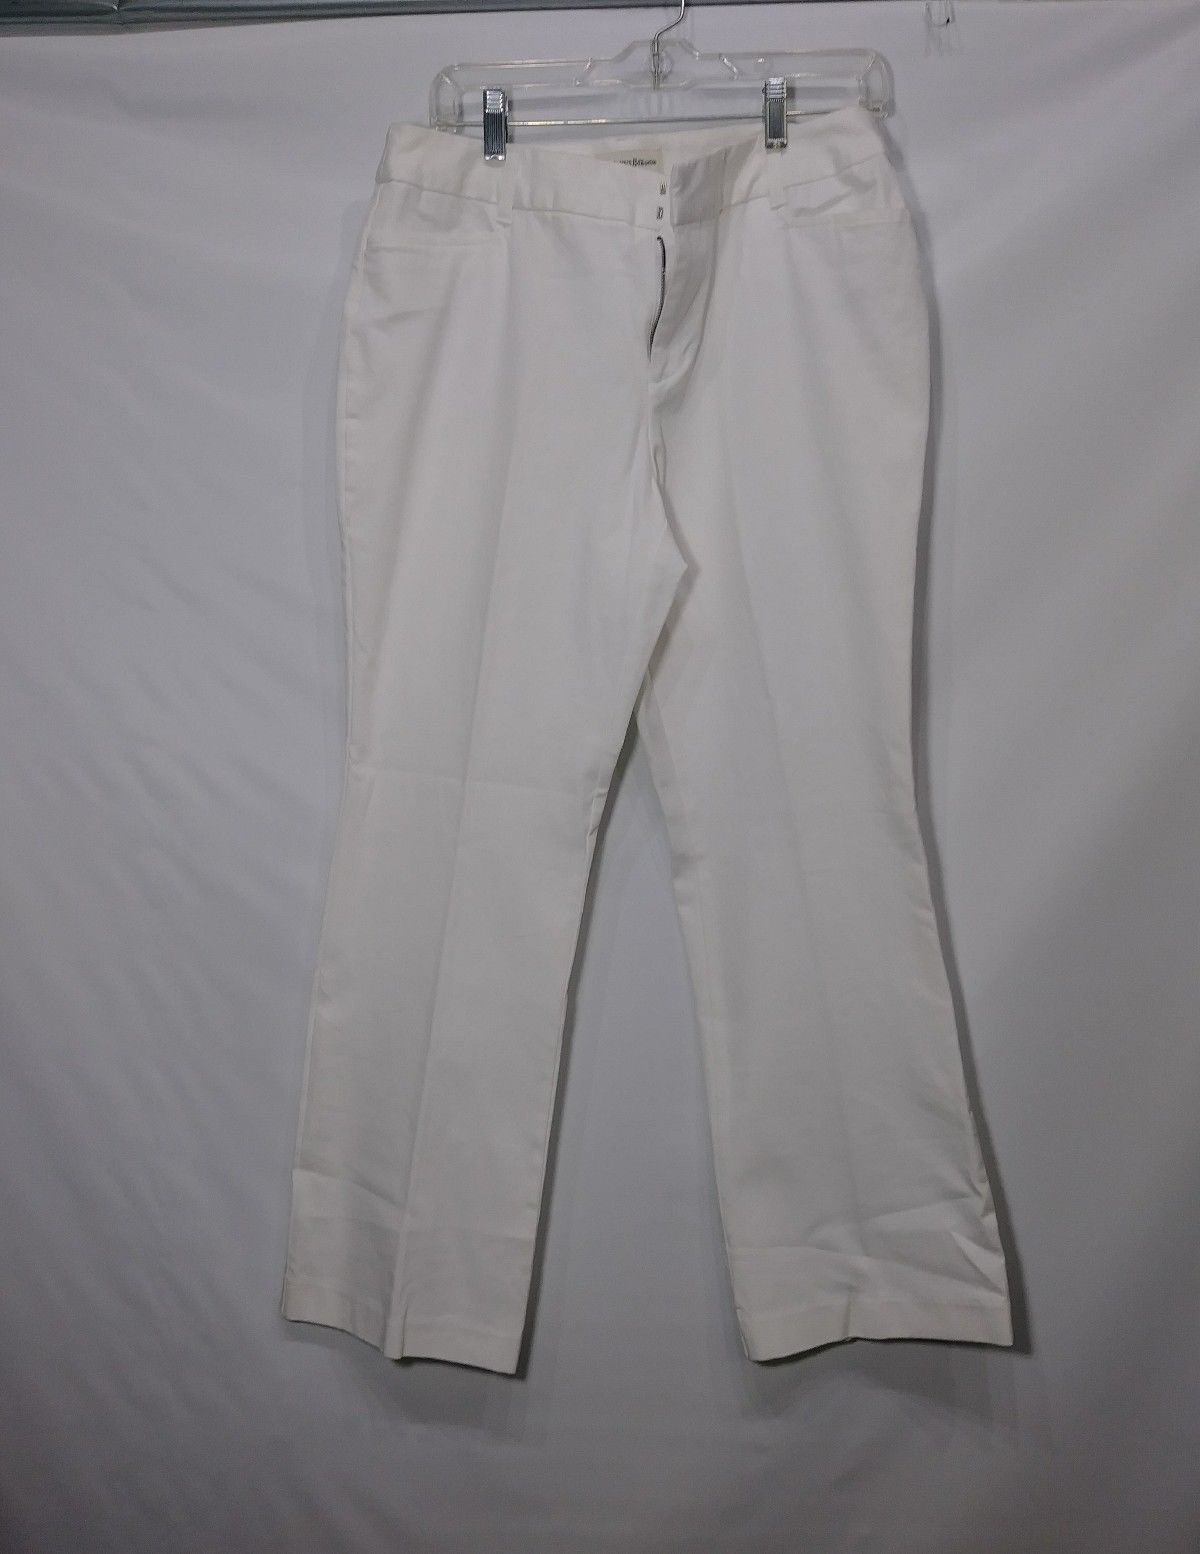 ST. JOHN'S BAY PETITE STRETCH PANTS WHITE SIZE 14P COTTON BLEND RN 93677 BAHRAIN